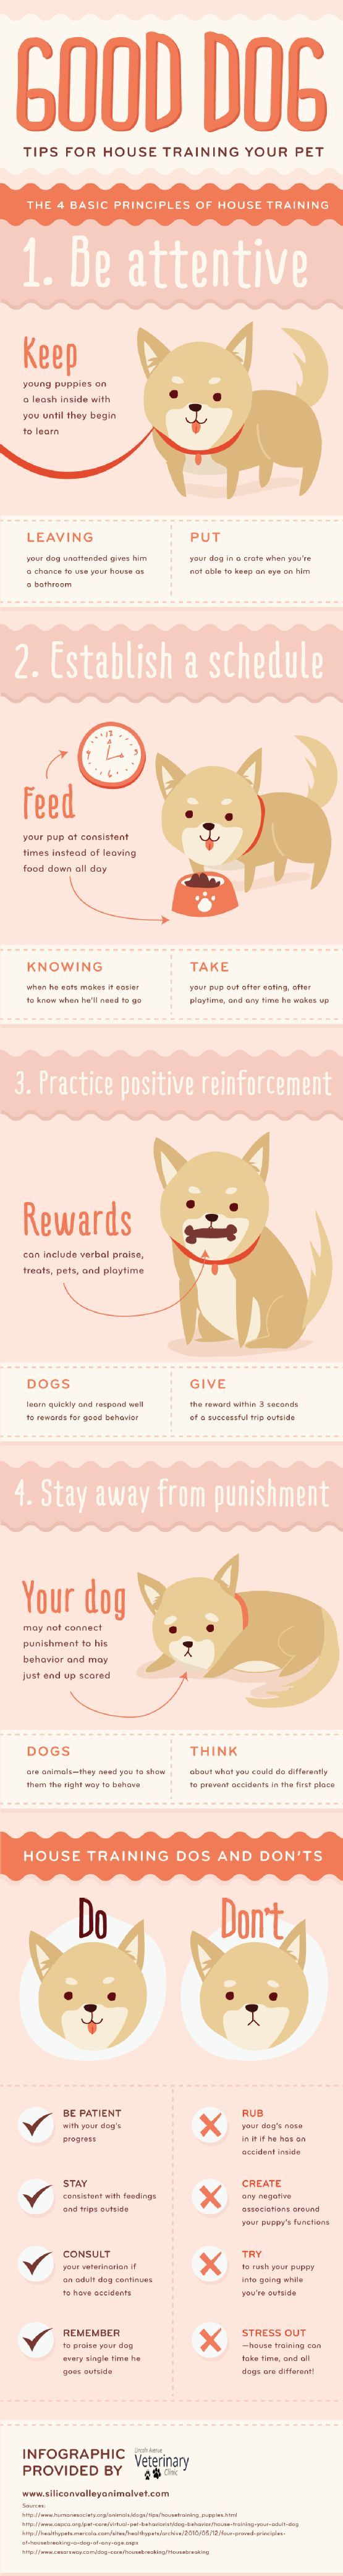 Handy infographic on how to house train your new pip! www.dobermanlabs.com